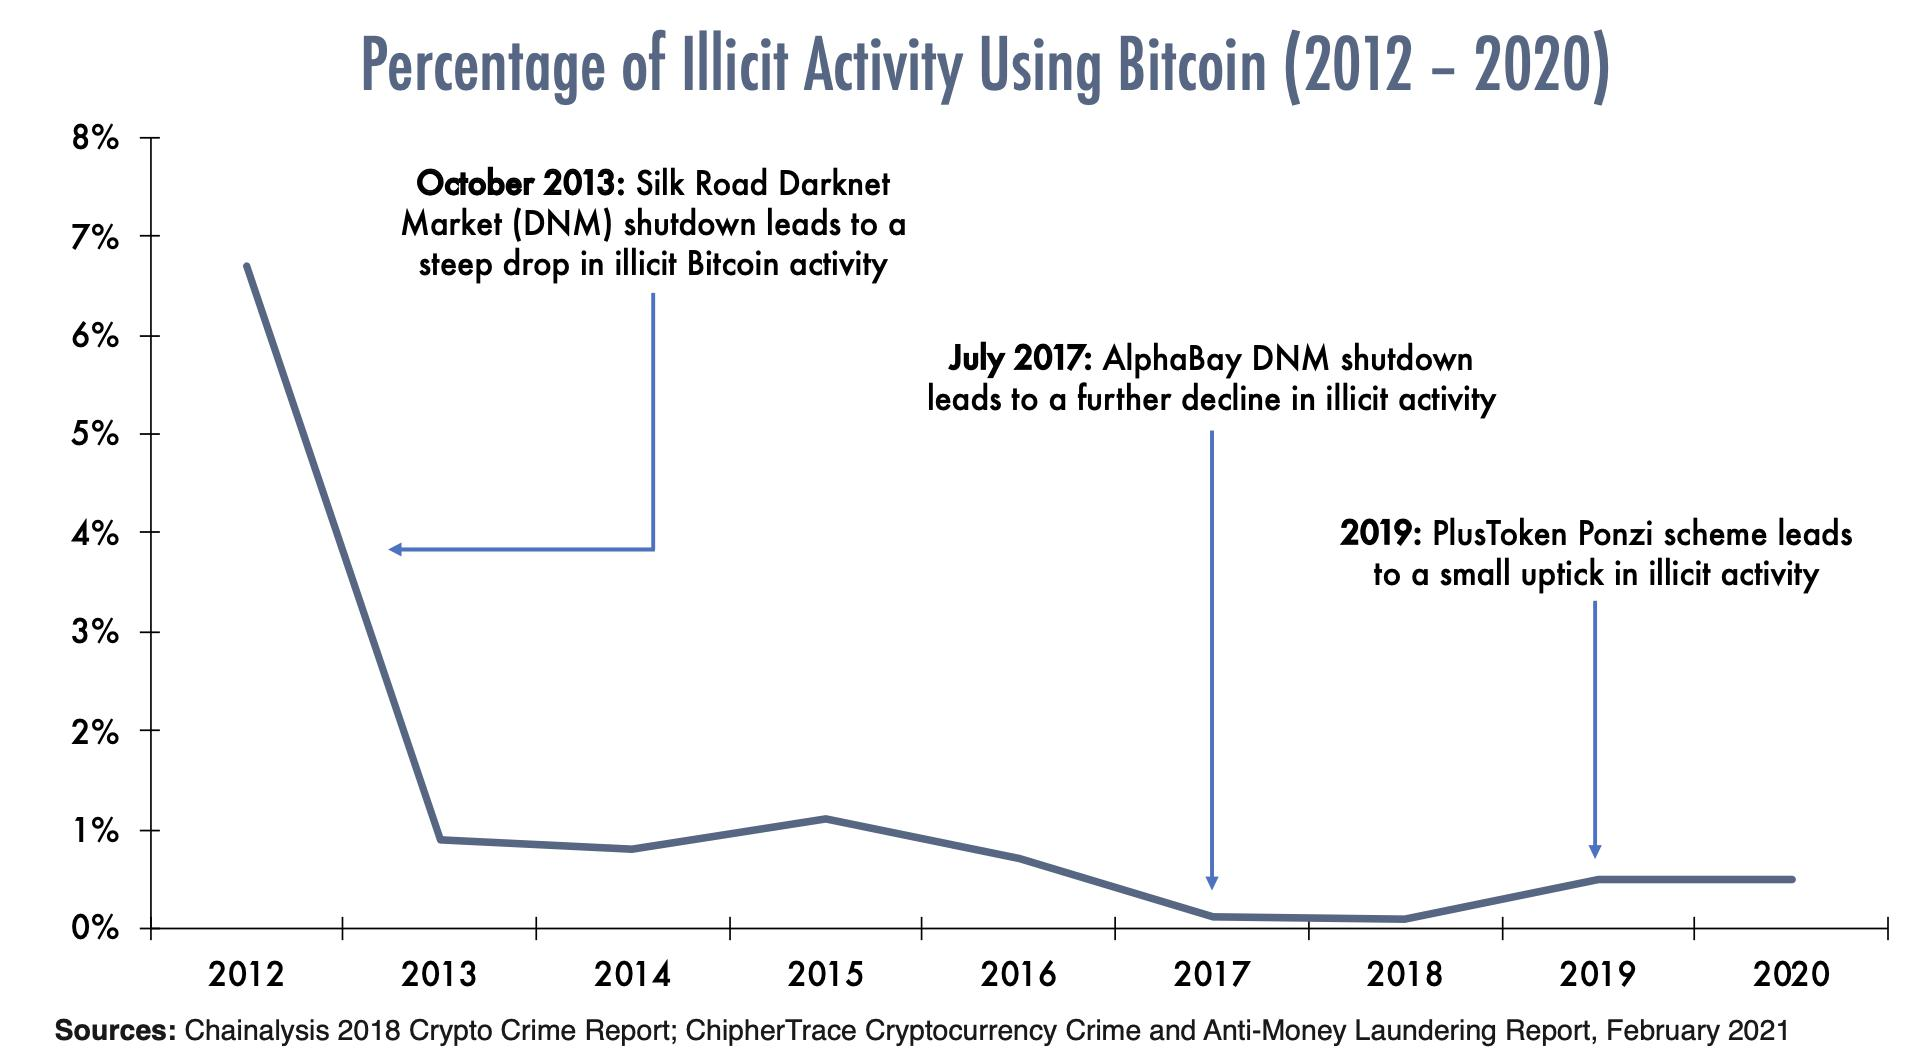 Percentage of Illicit Activity Using Bitcoin (2012-2020)